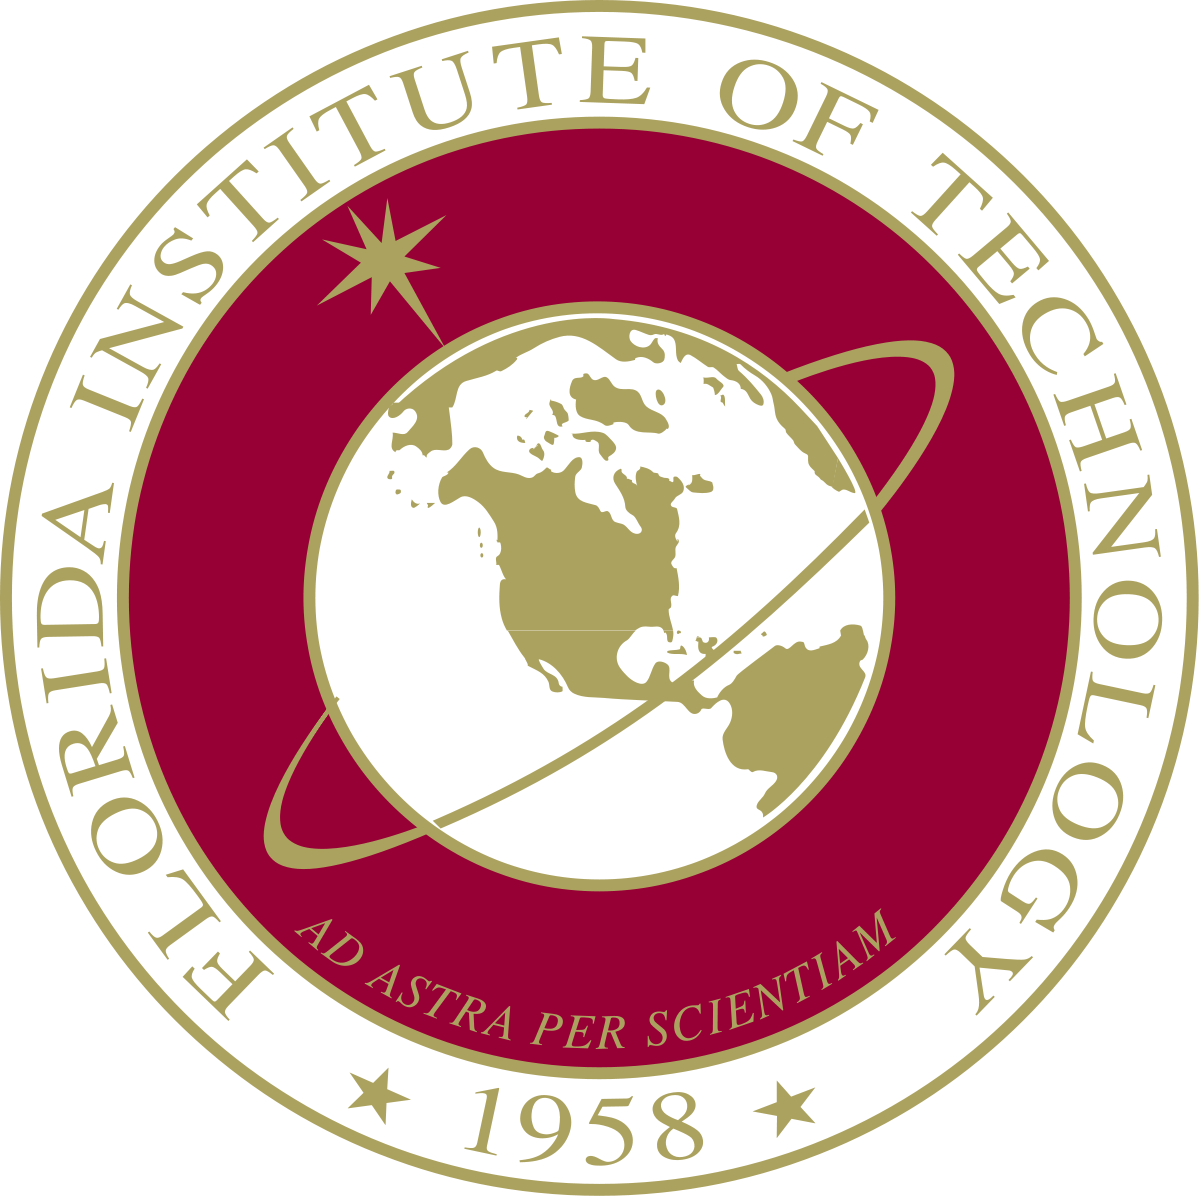 Florida Institute of Technology Ranking